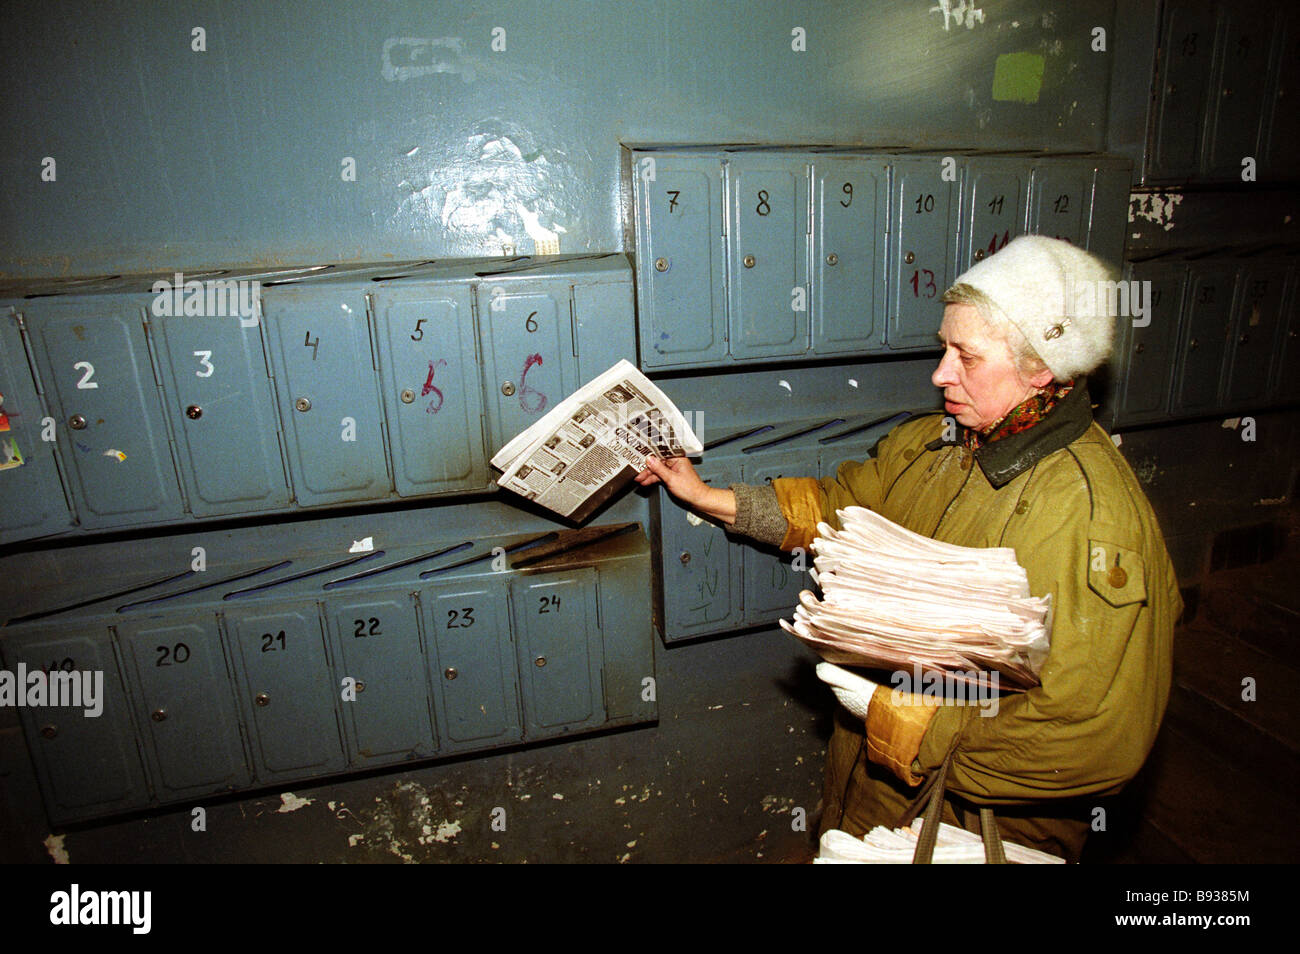 Post woman placing fresh newspapers inside mailboxes at apartment house entrance - Stock Image